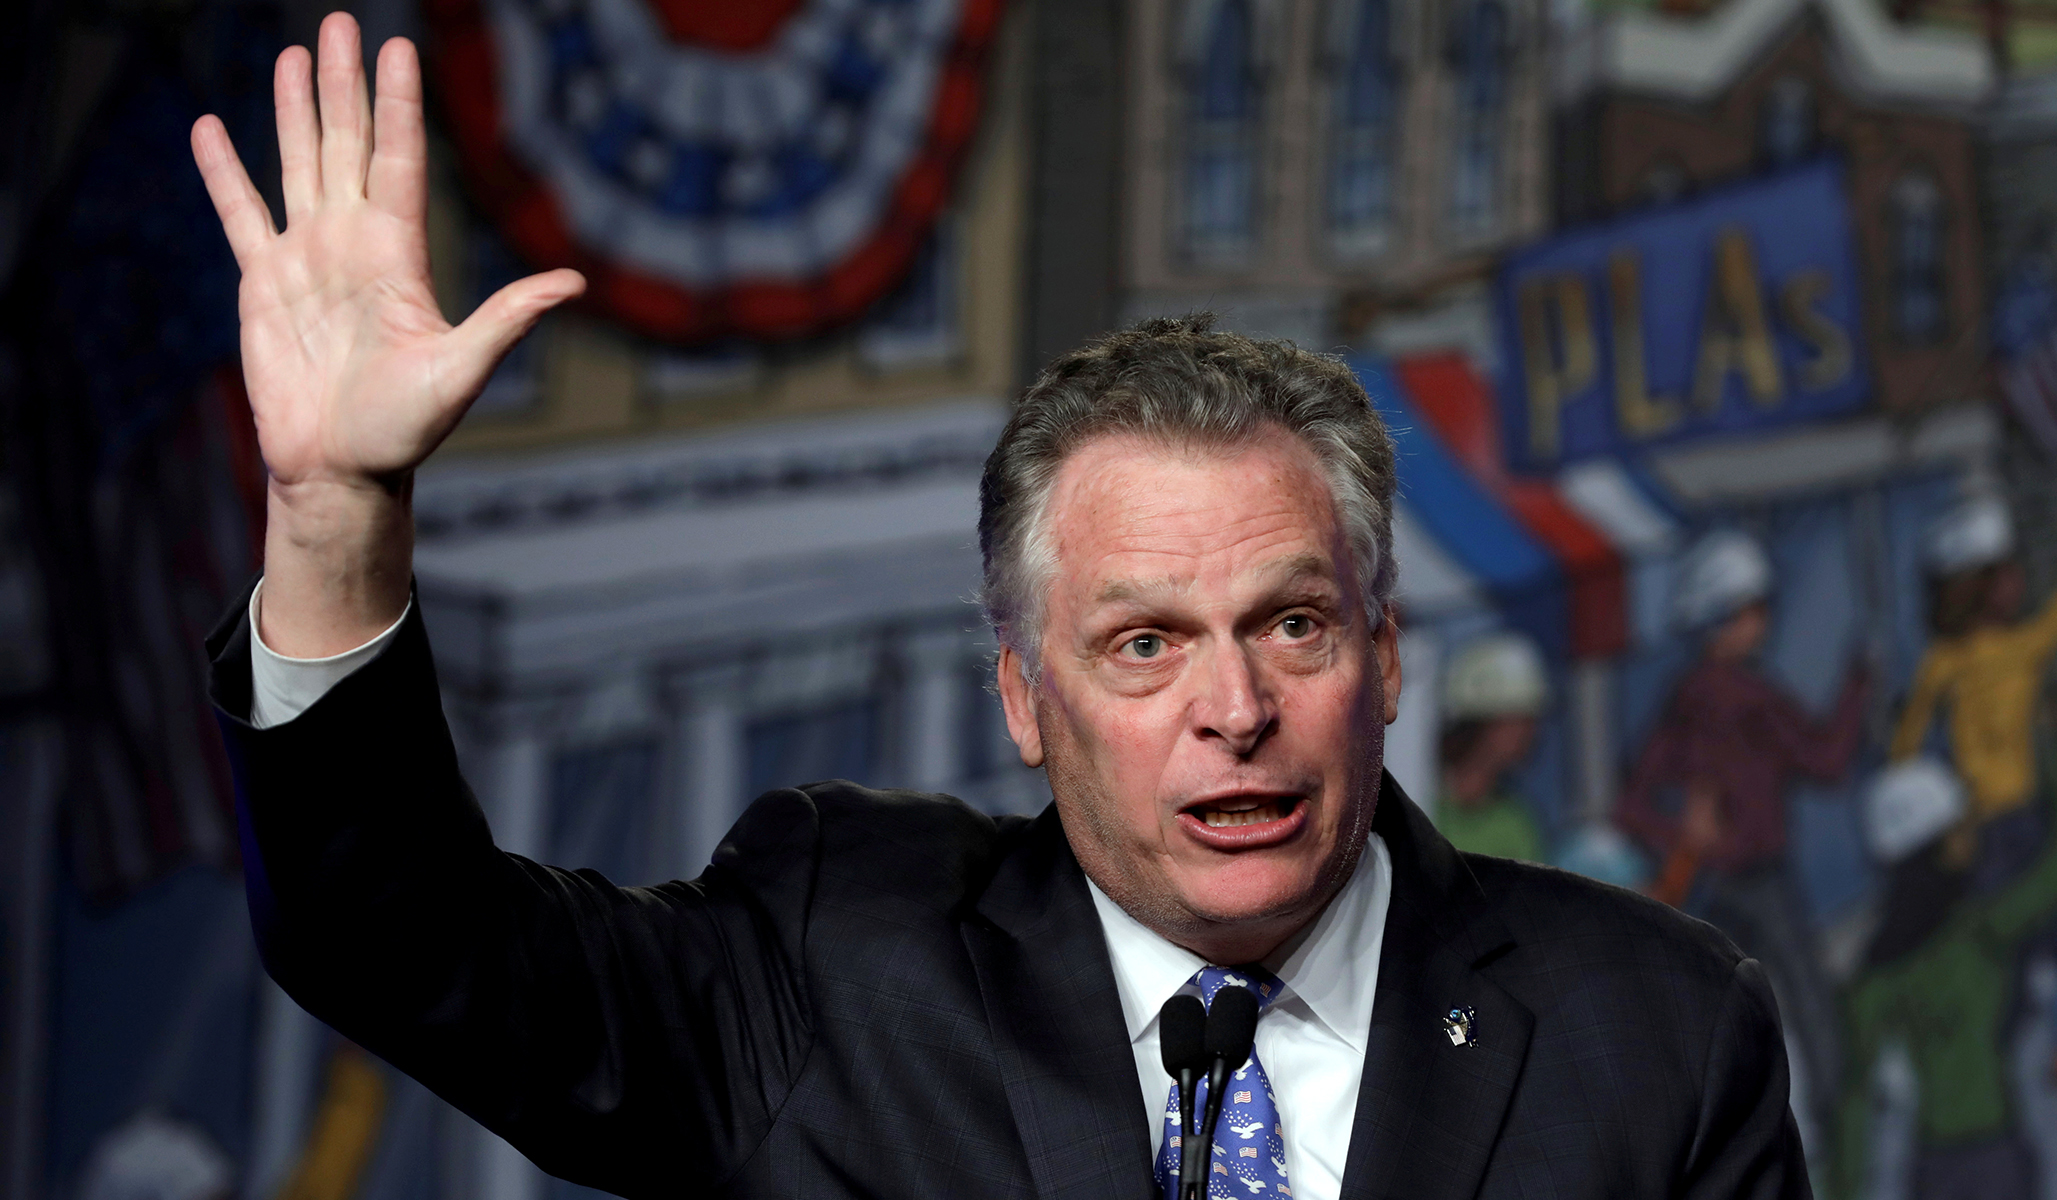 Virginia Governor Race: Terry McAuliffe Dodges on Taxpayer Funding of Abortions for Medicaid Recipients